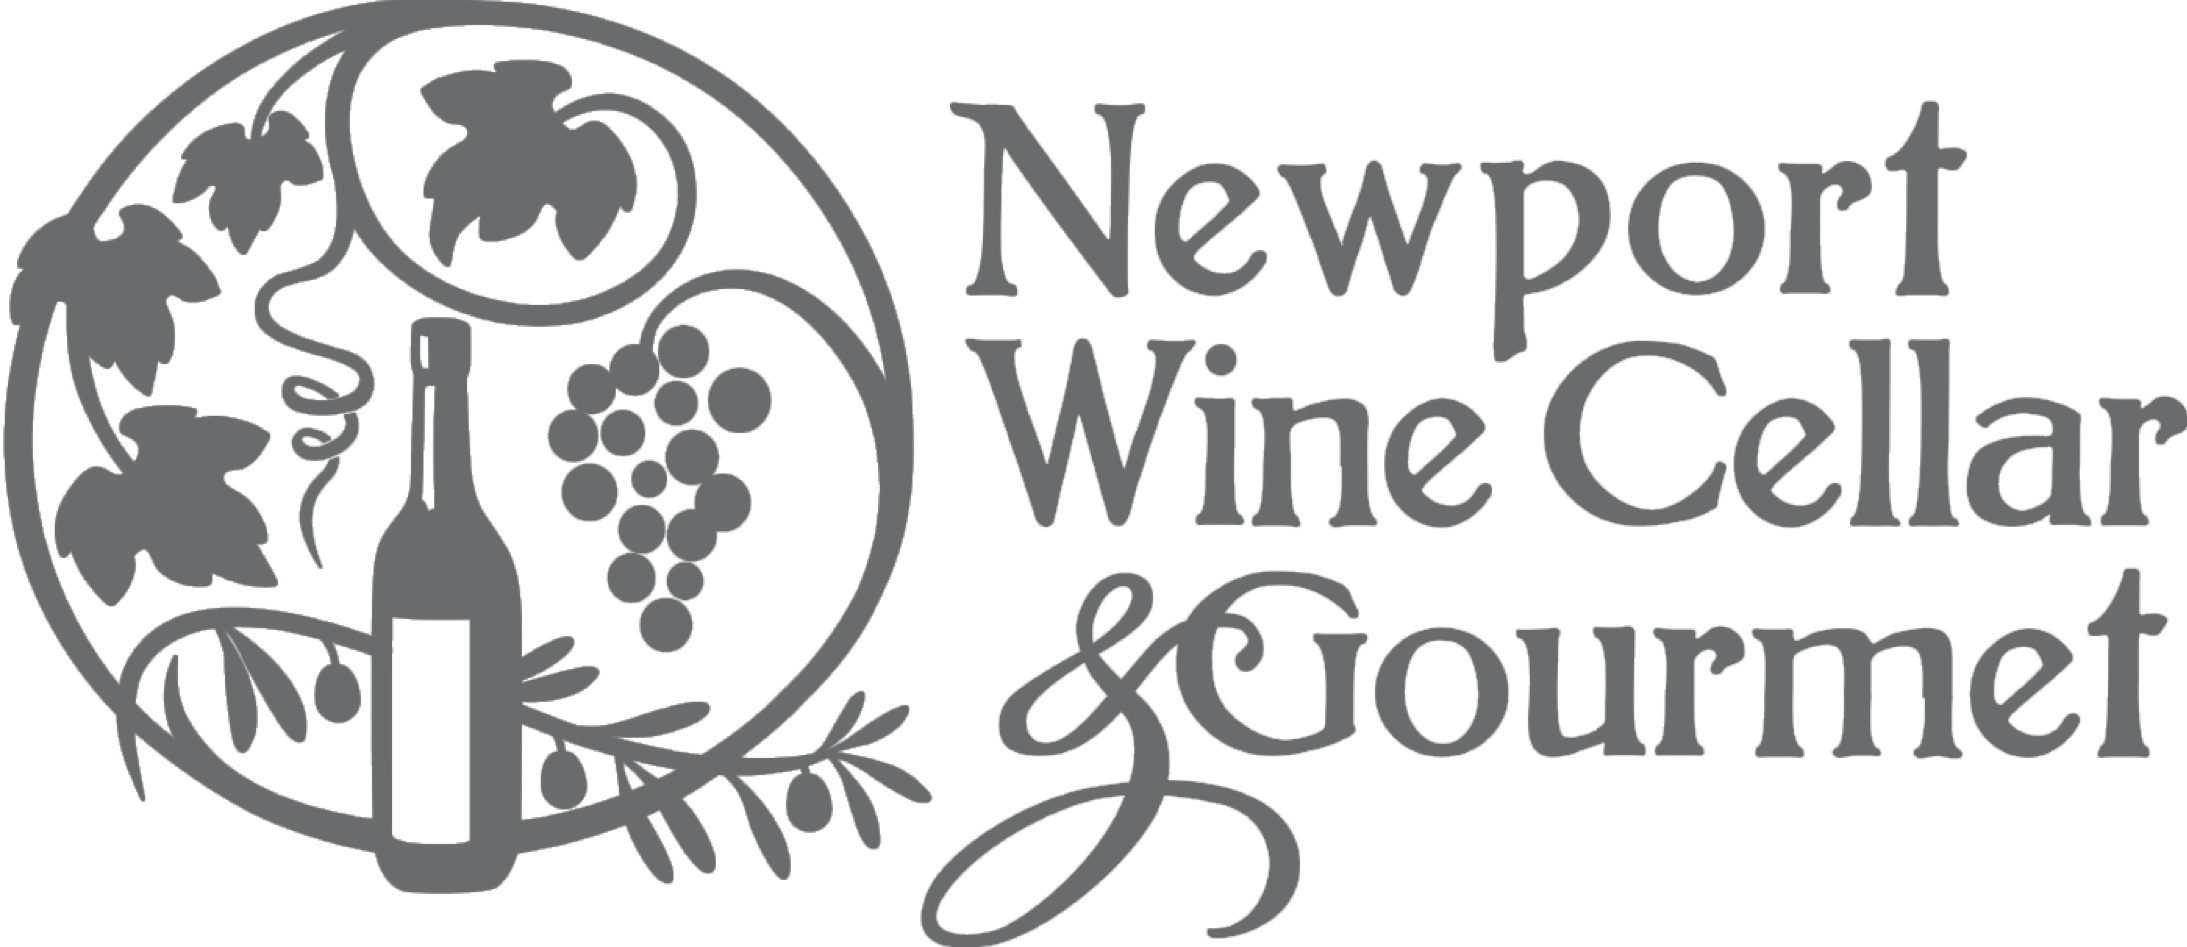 Newport Wine Cellar_PMS Cool Gray.jpg